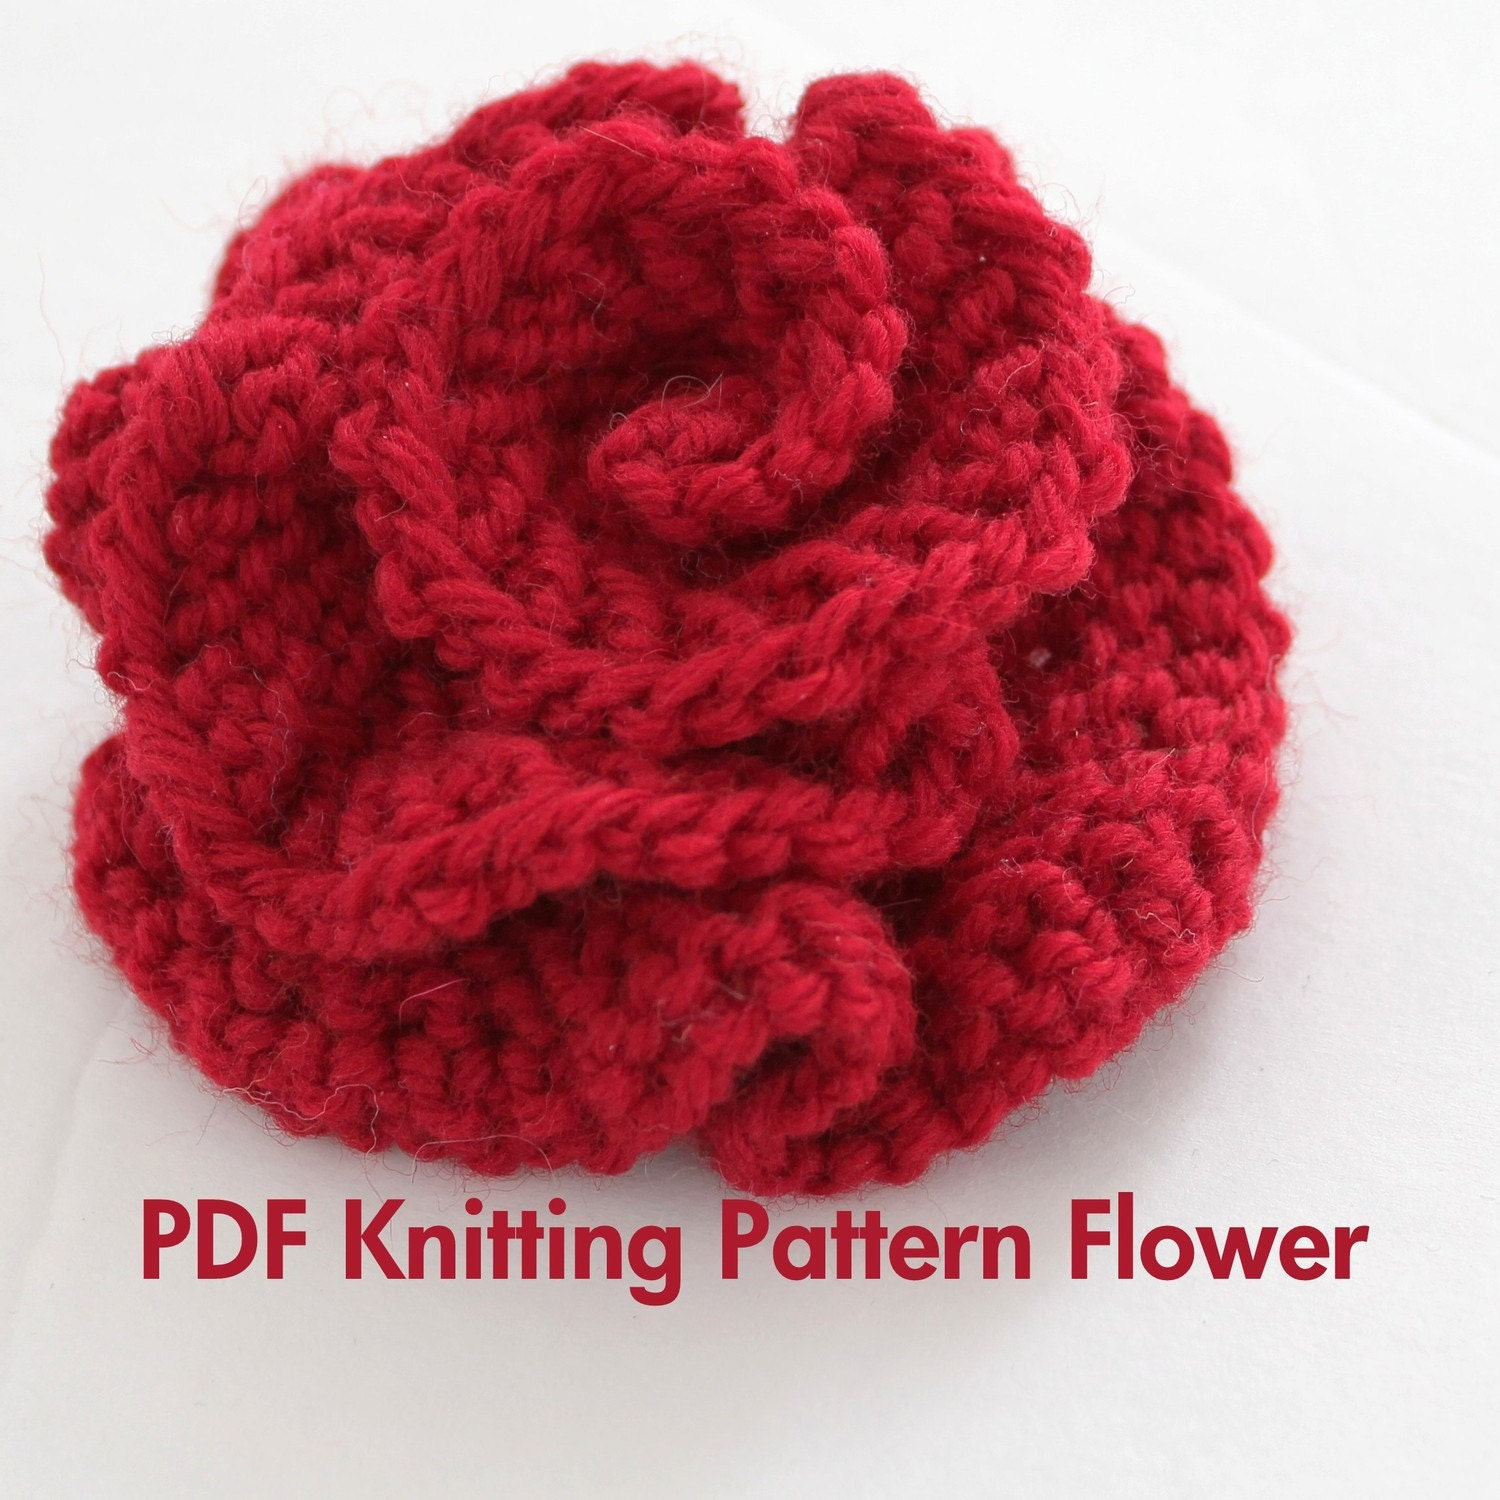 Easy Knitting Patterns Instructions : Pattern knitted flower pdf very easy photo tutorial